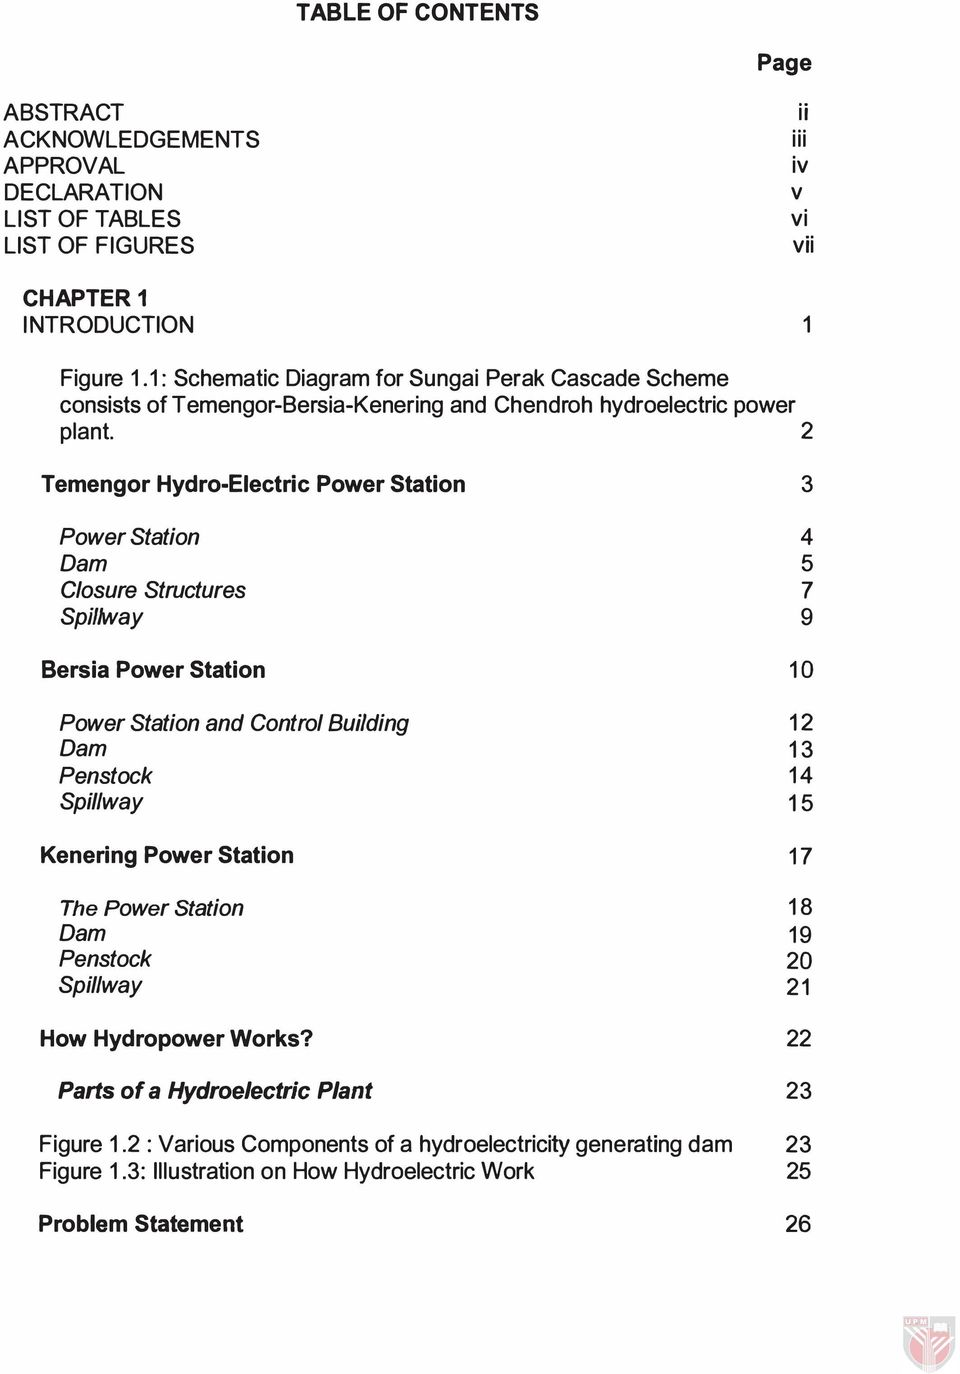 medium resolution of 2 temengor hydro electric power station 3 power station 4 dam 5 closure structures 7